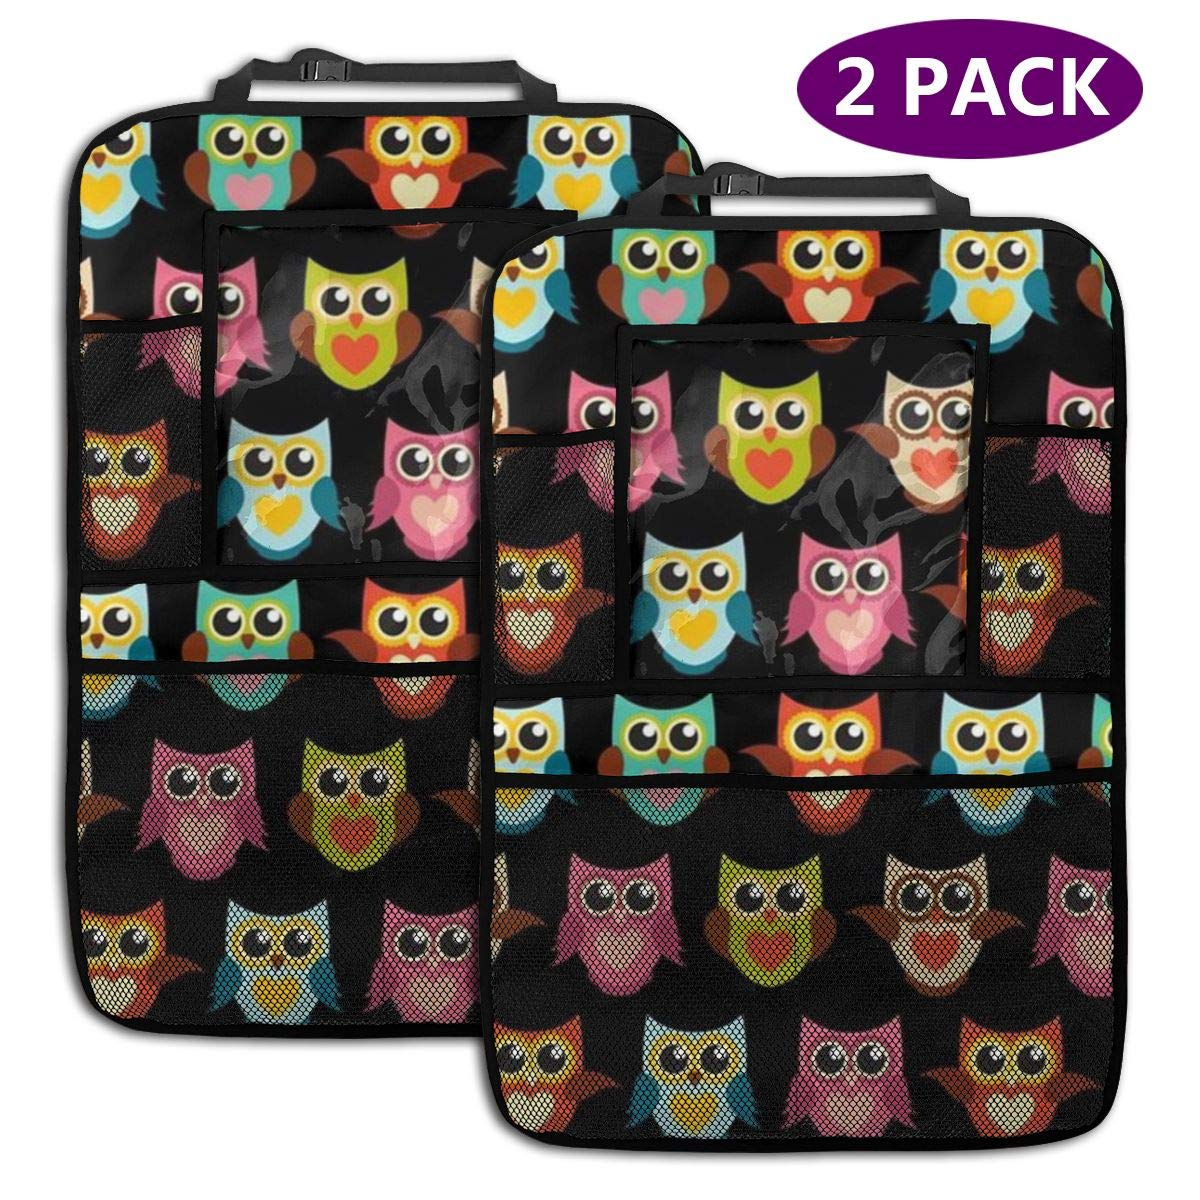 QF6FEICHAN Owl in Colorful Car Seat Back Protectors with Storage Pockets Kick Mats Accessories for Kids and Toddlers by QF6FEICHAN